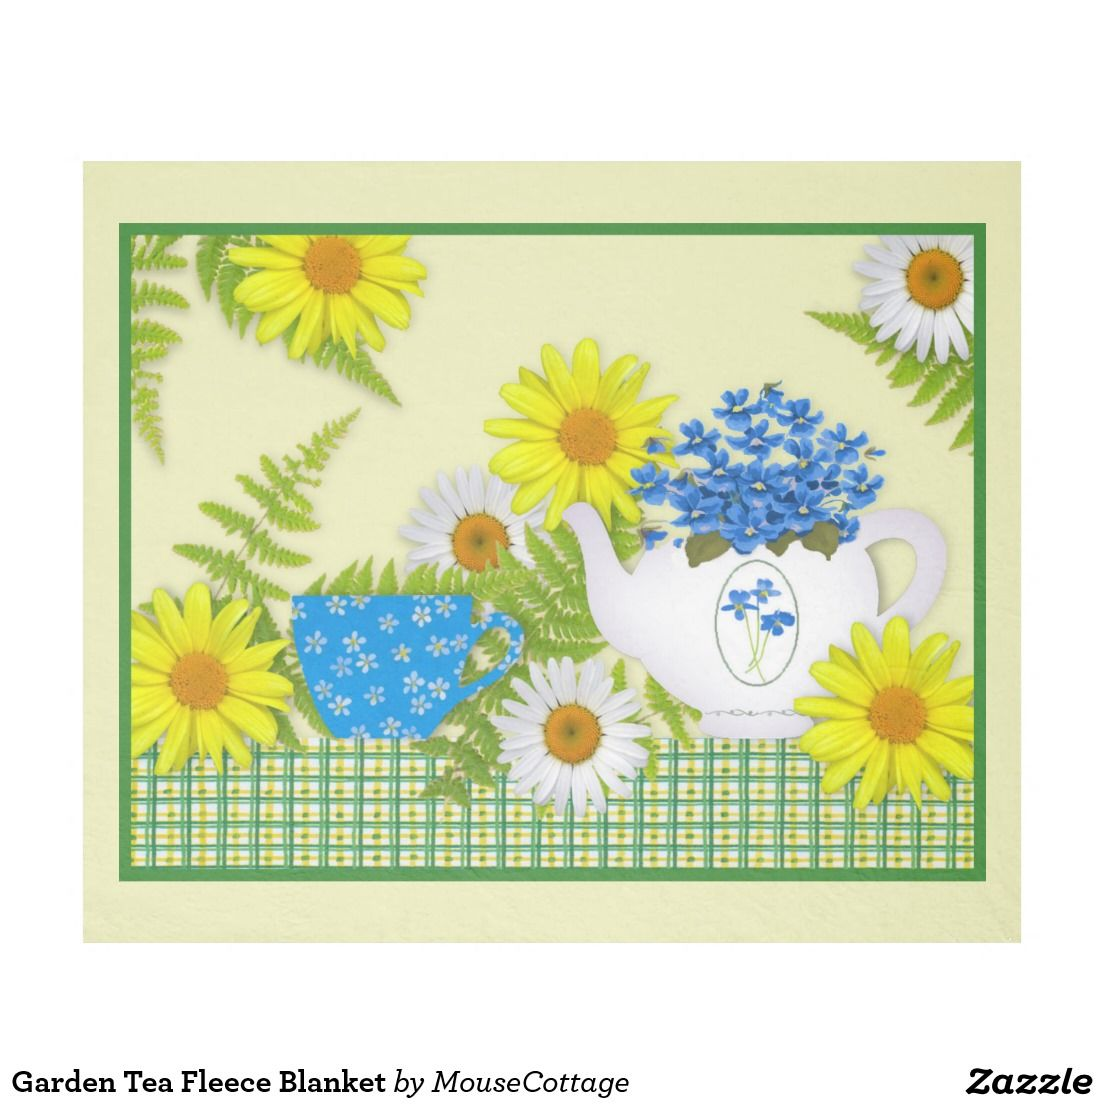 Garden tea fleece blanket